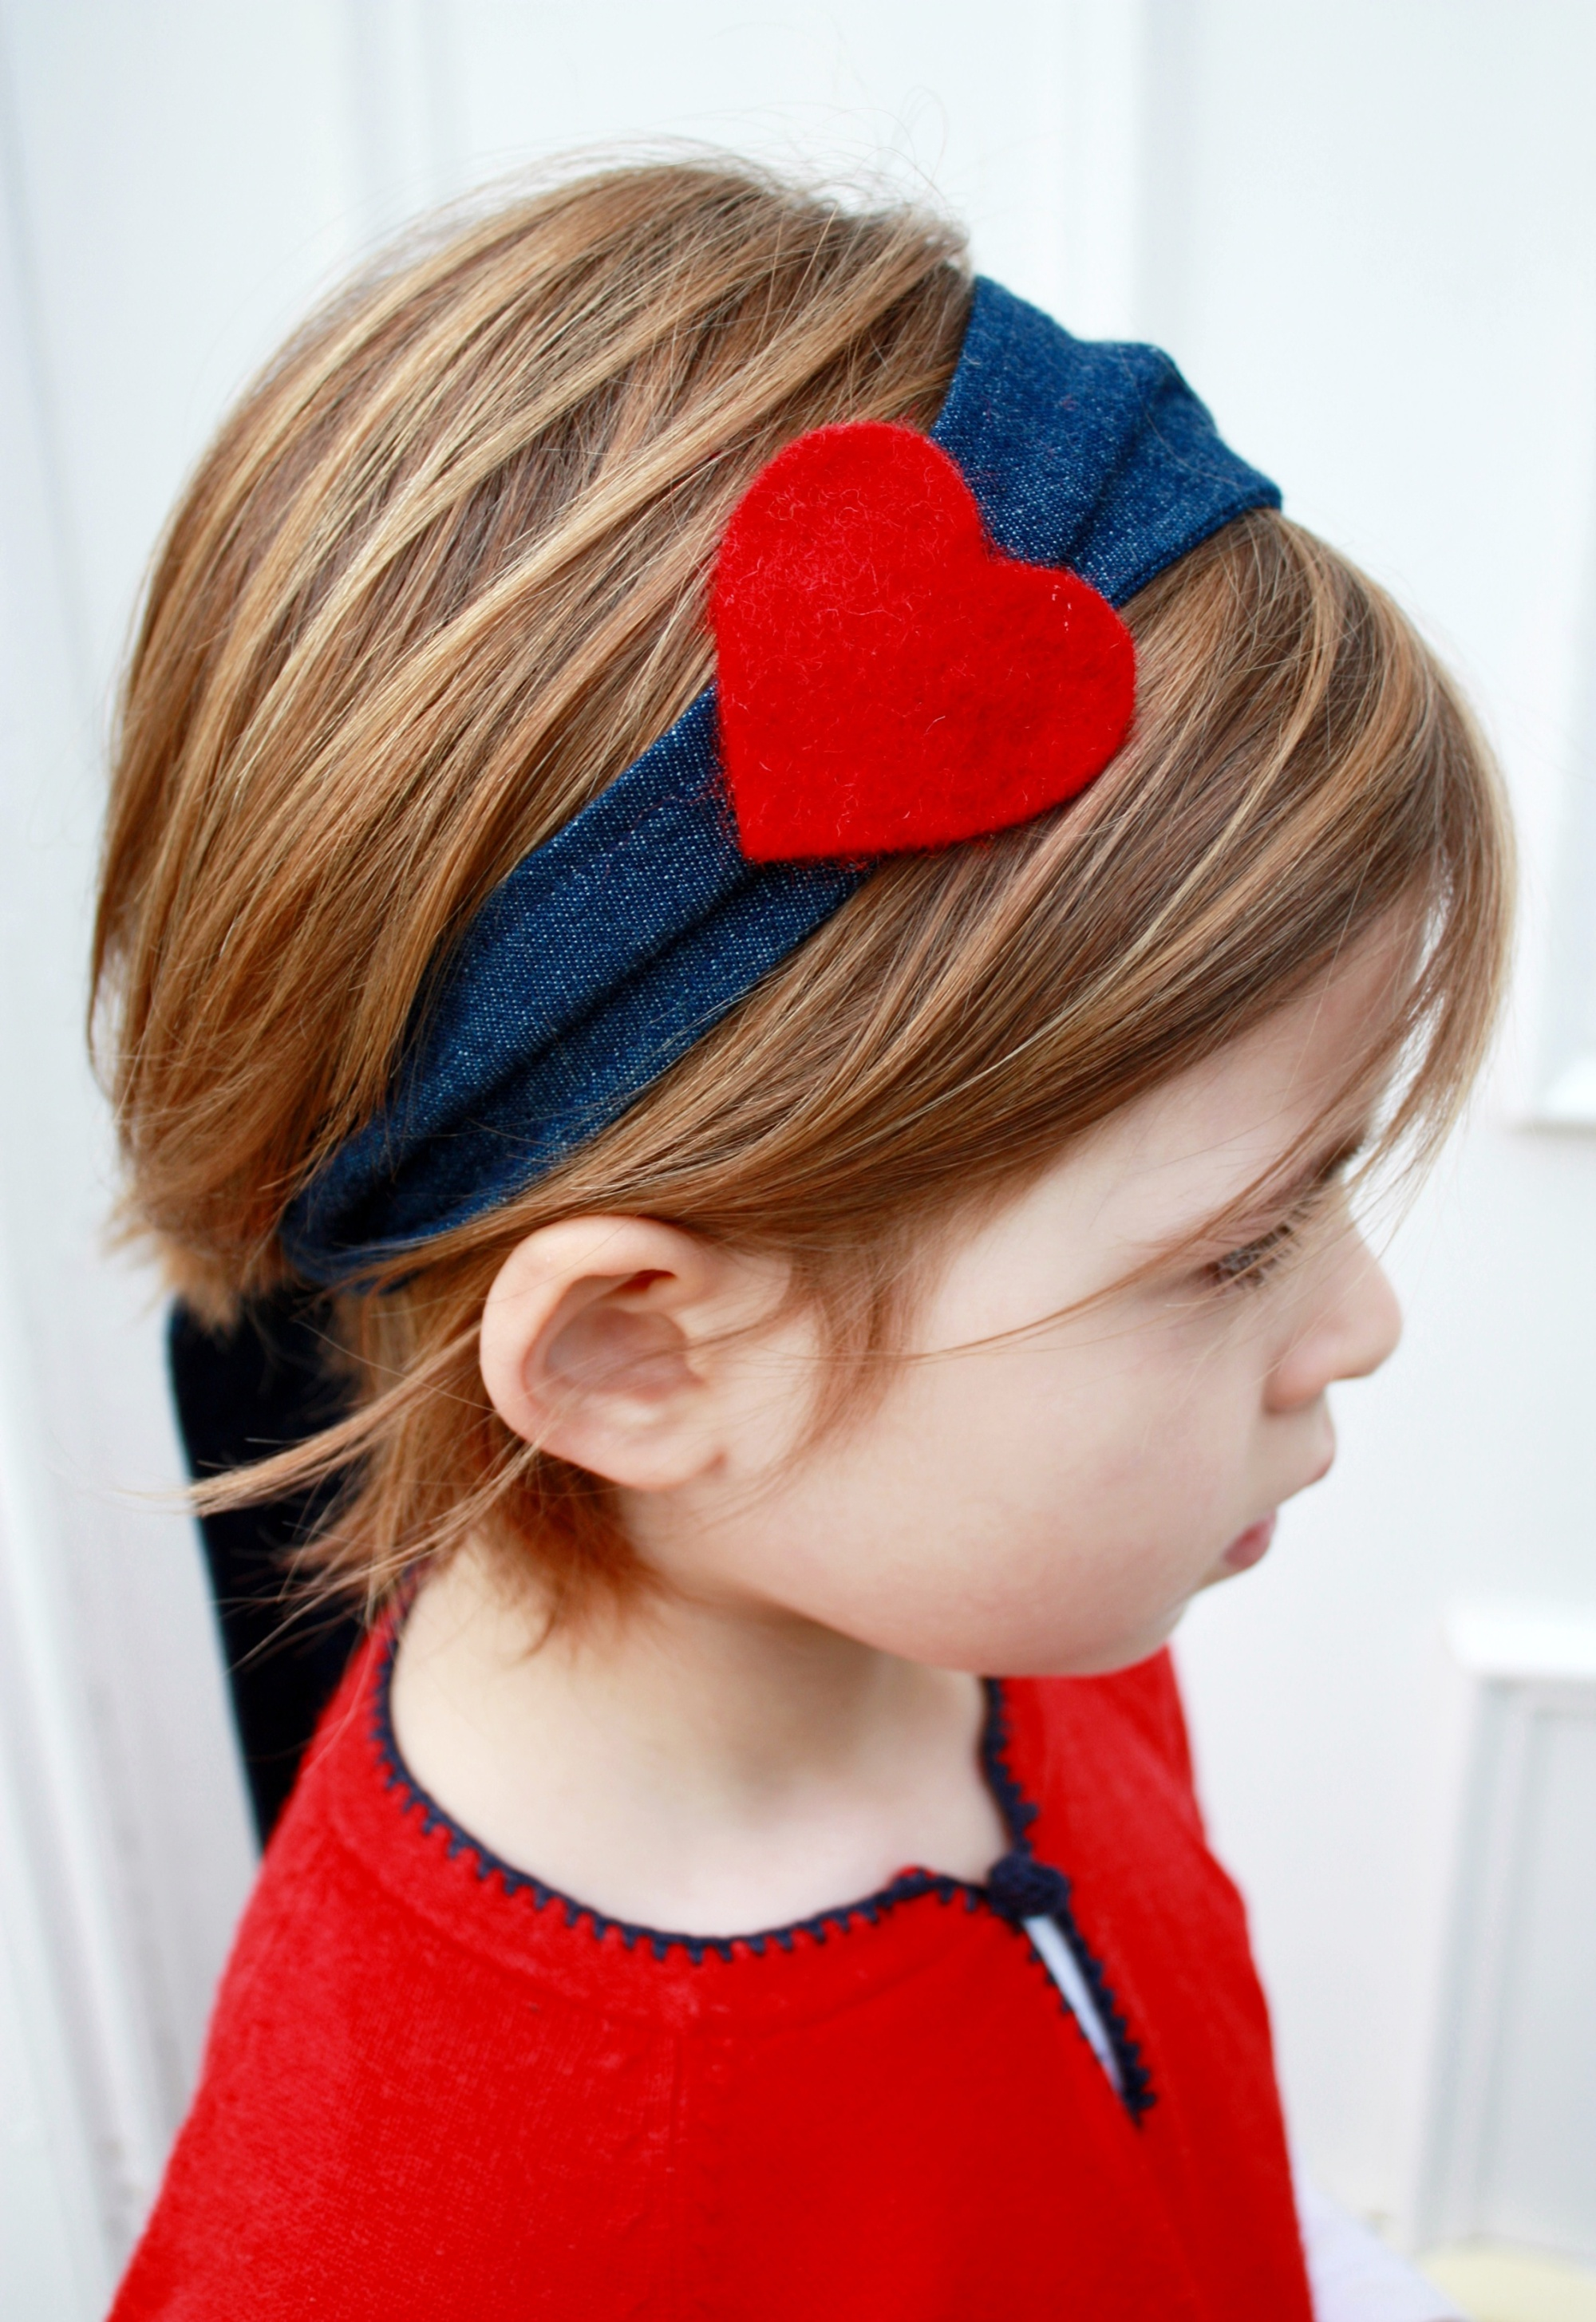 Denim headband with red felt heart 1